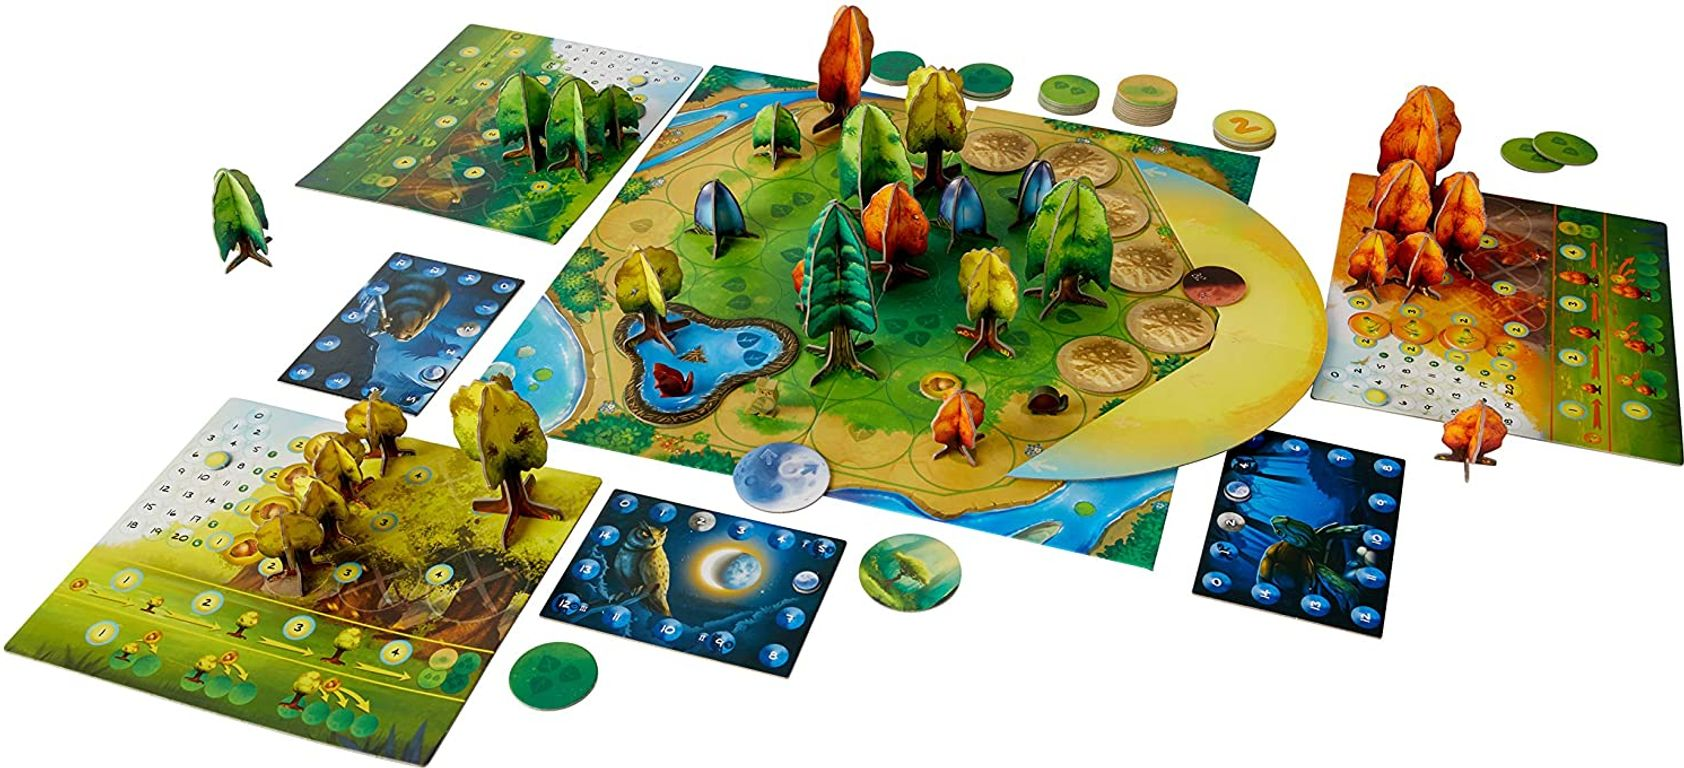 Photosynthesis: Under the Moonlight gameplay